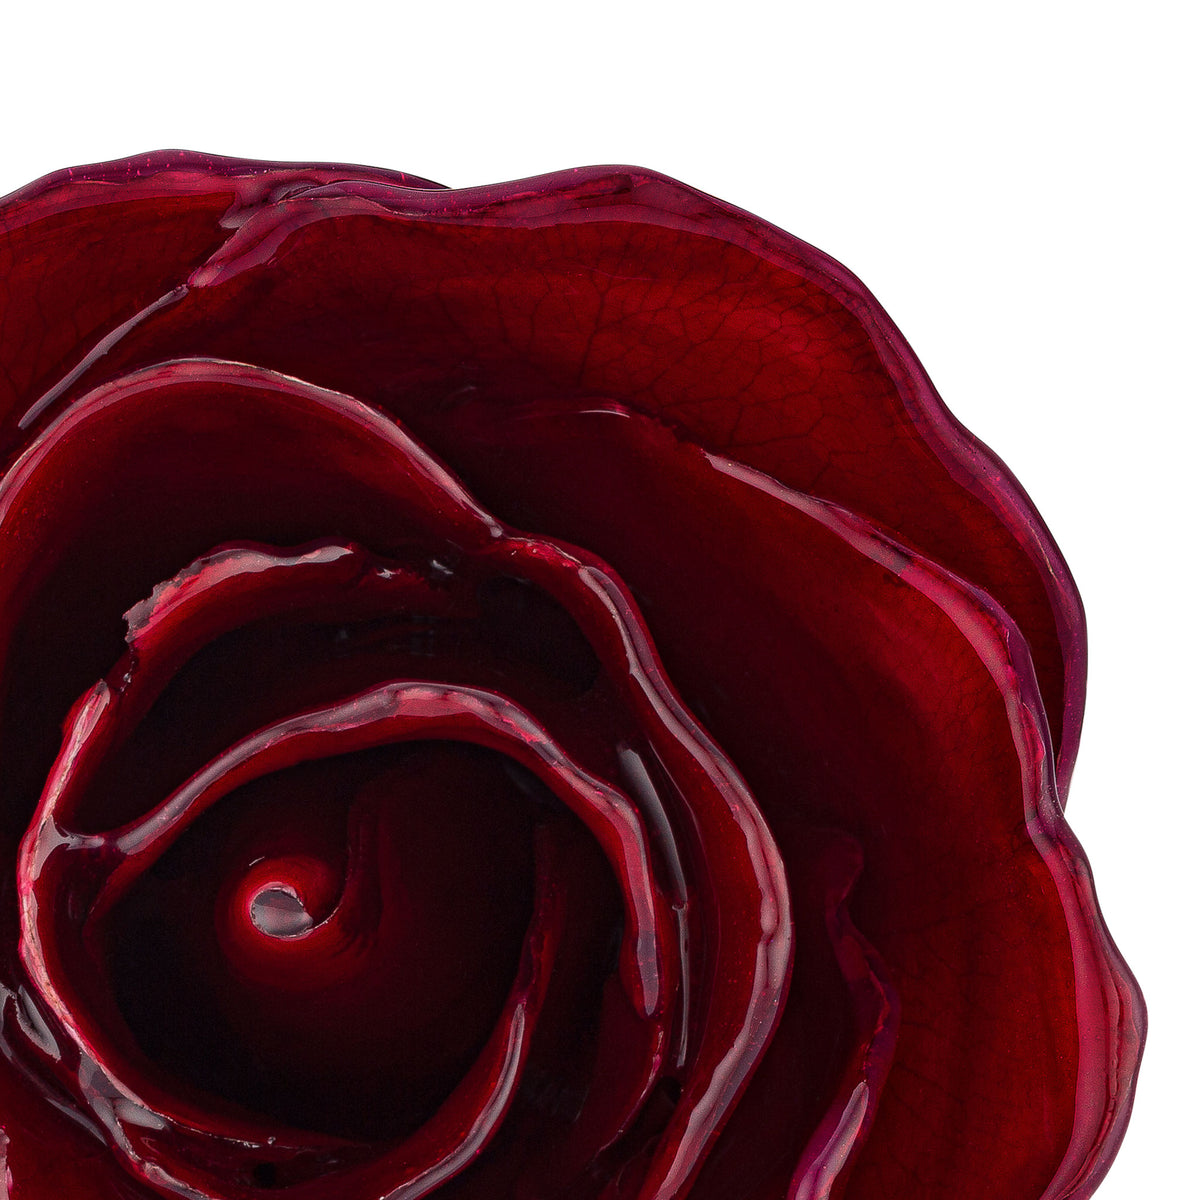 Natural (Green Stem) Forever Rose with Deep Red, Burgundy Colored Petals. View of Stem, Leaves, and Rose Petals. This a Forever Rose without any gold or other precious metals on it. zoomed in view from top.